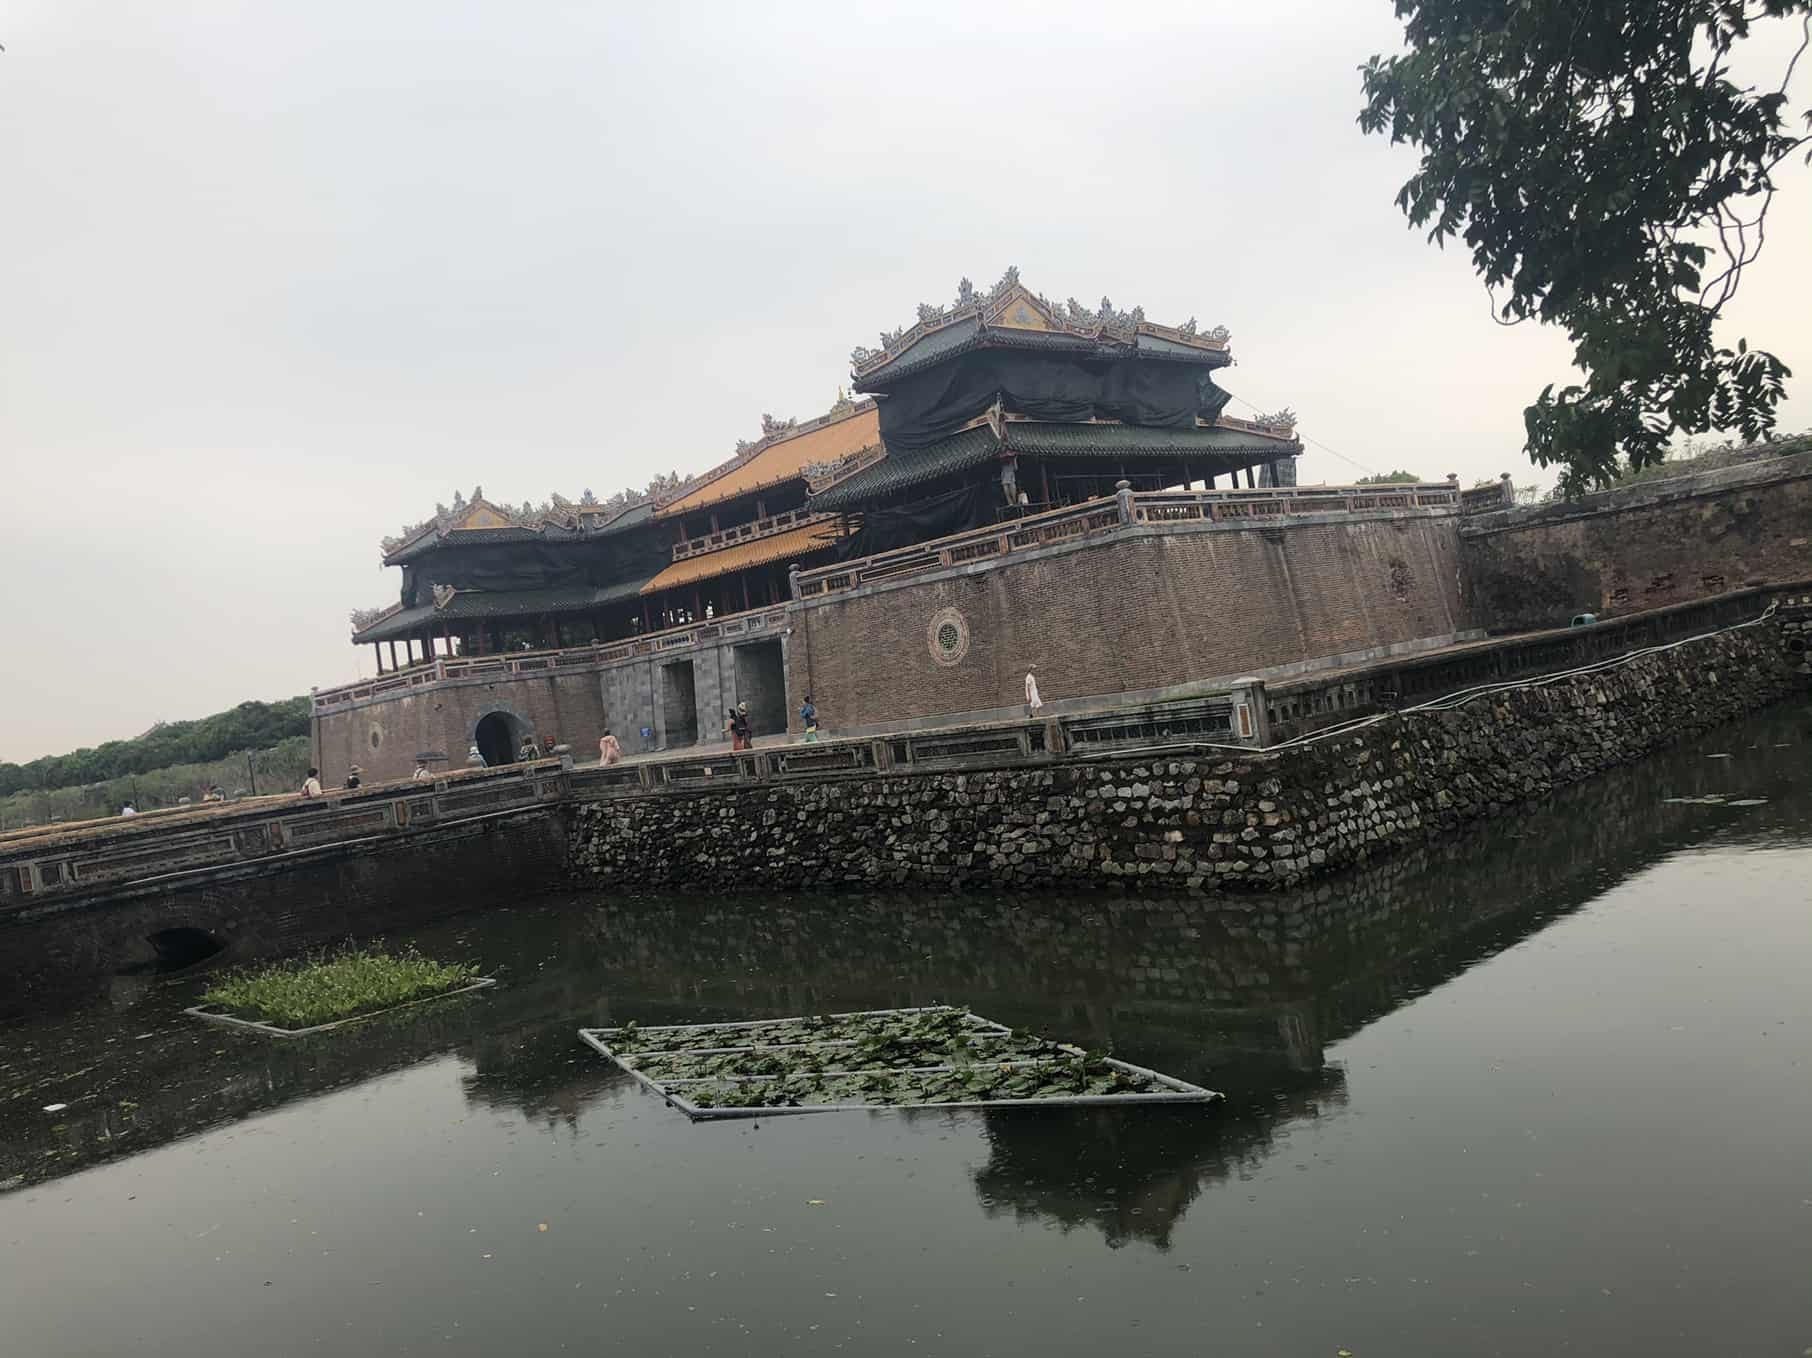 Hue Imperial Palace – Ben Around the World Diary – Day 149 – 14th November 2019